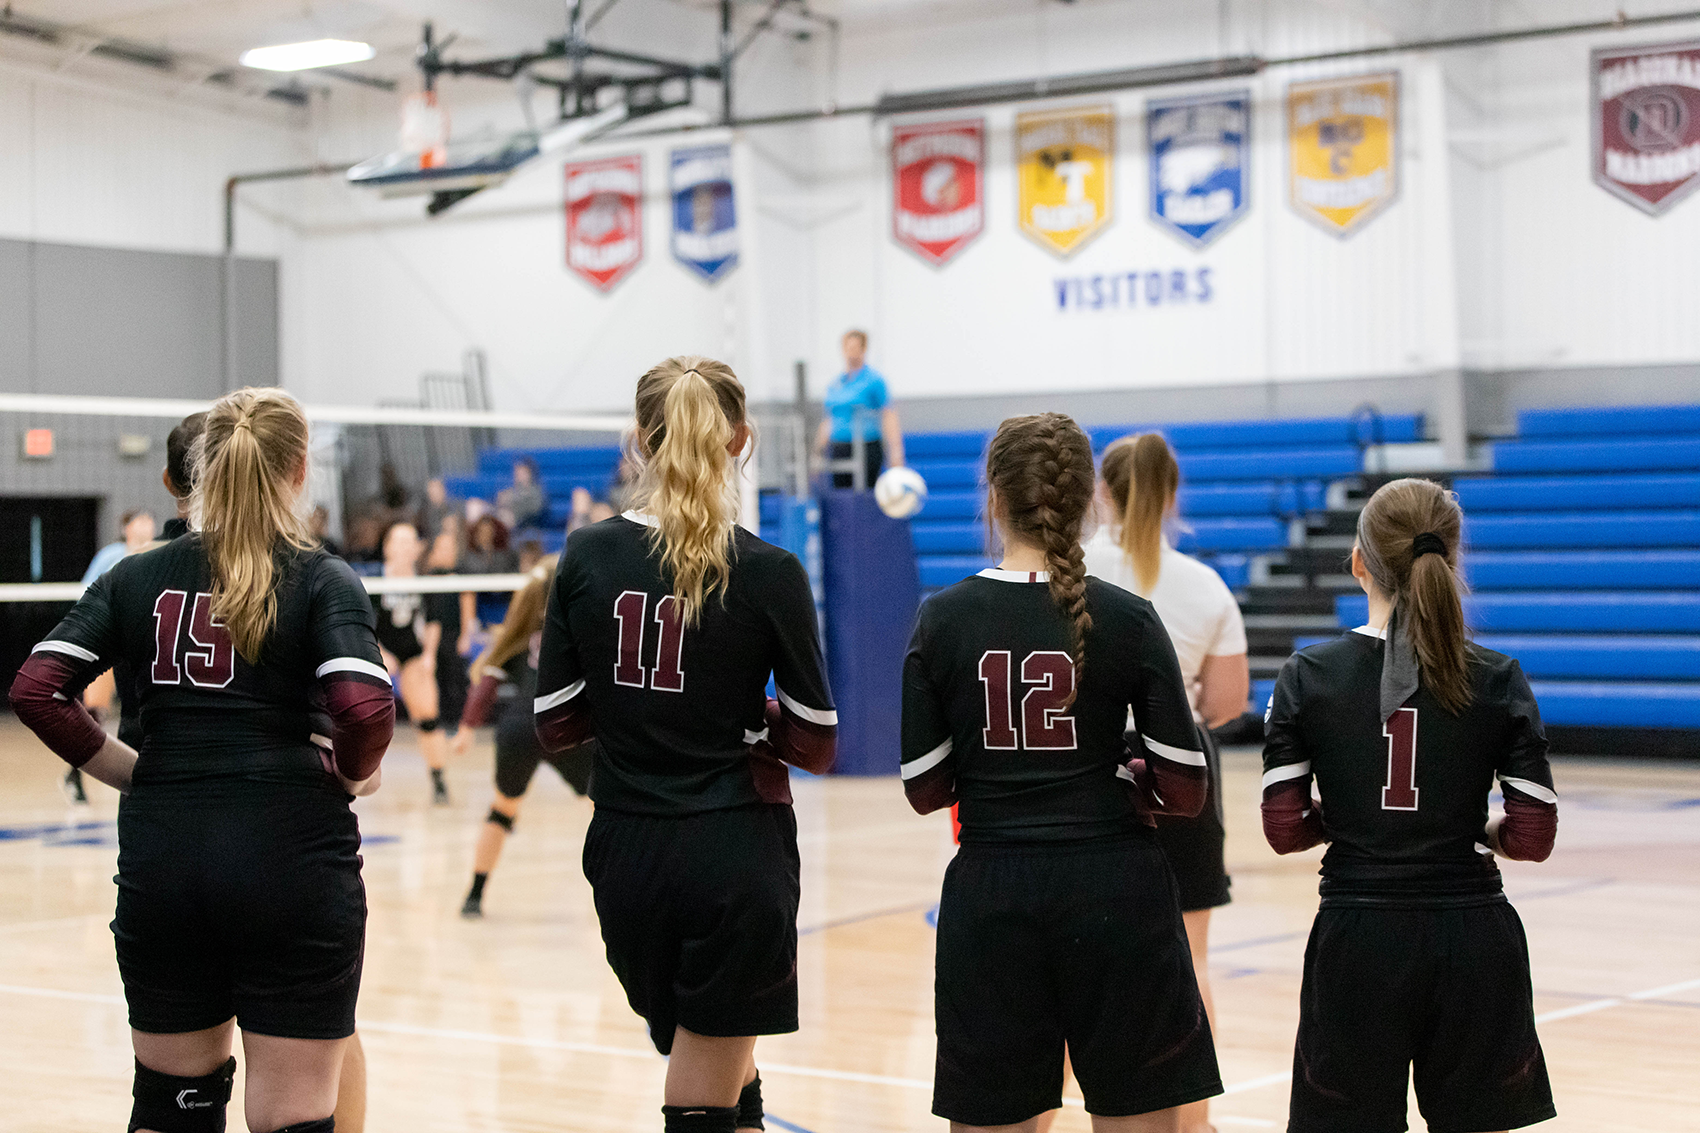 Season of Challenges Continues for Faith Volleyball